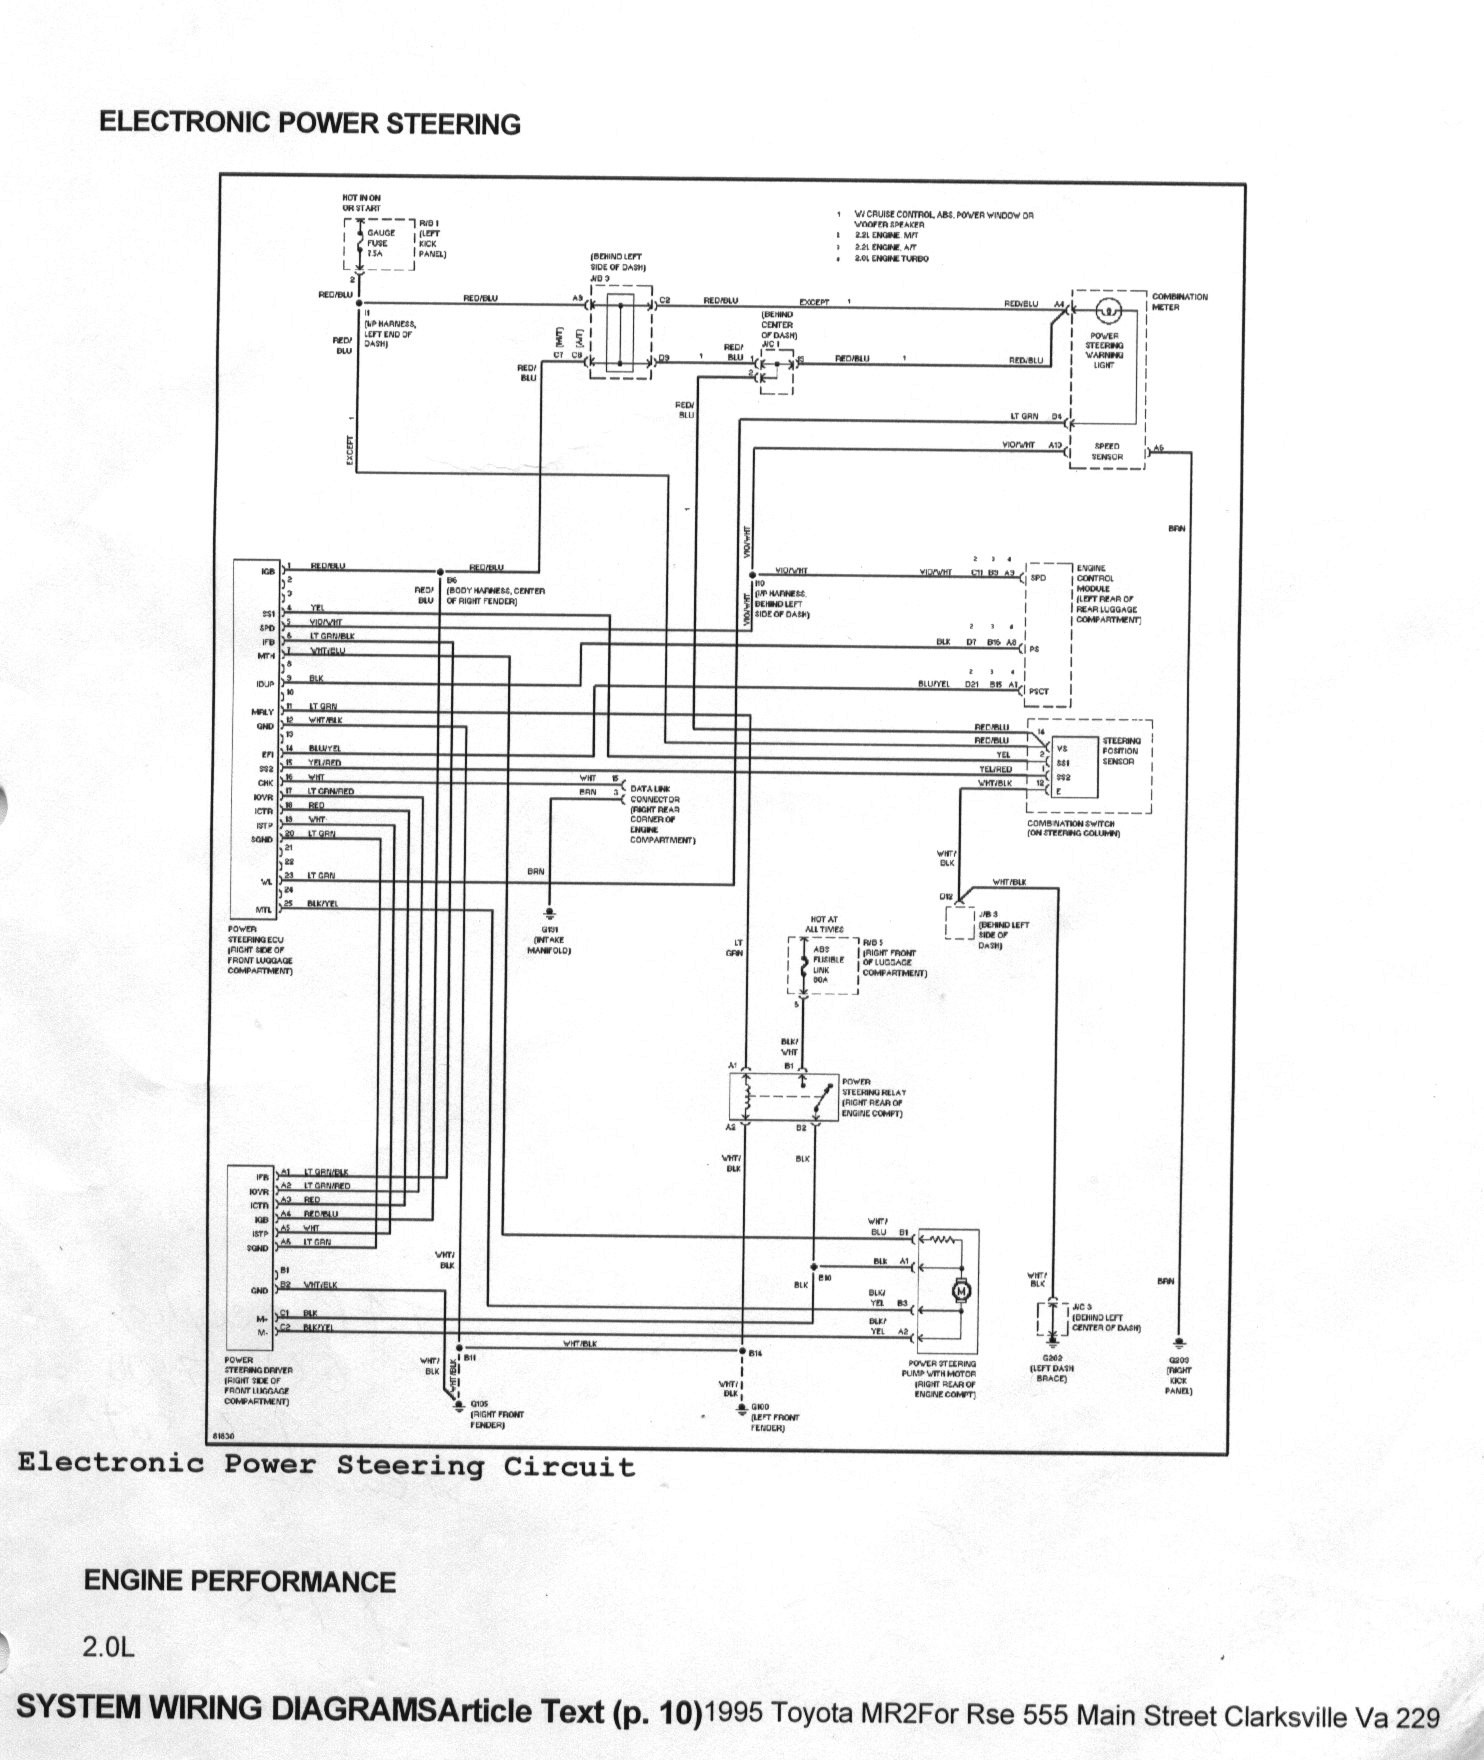 mr2ps1 toyota mr2 power steering system Basic Electrical Wiring Diagrams at gsmx.co